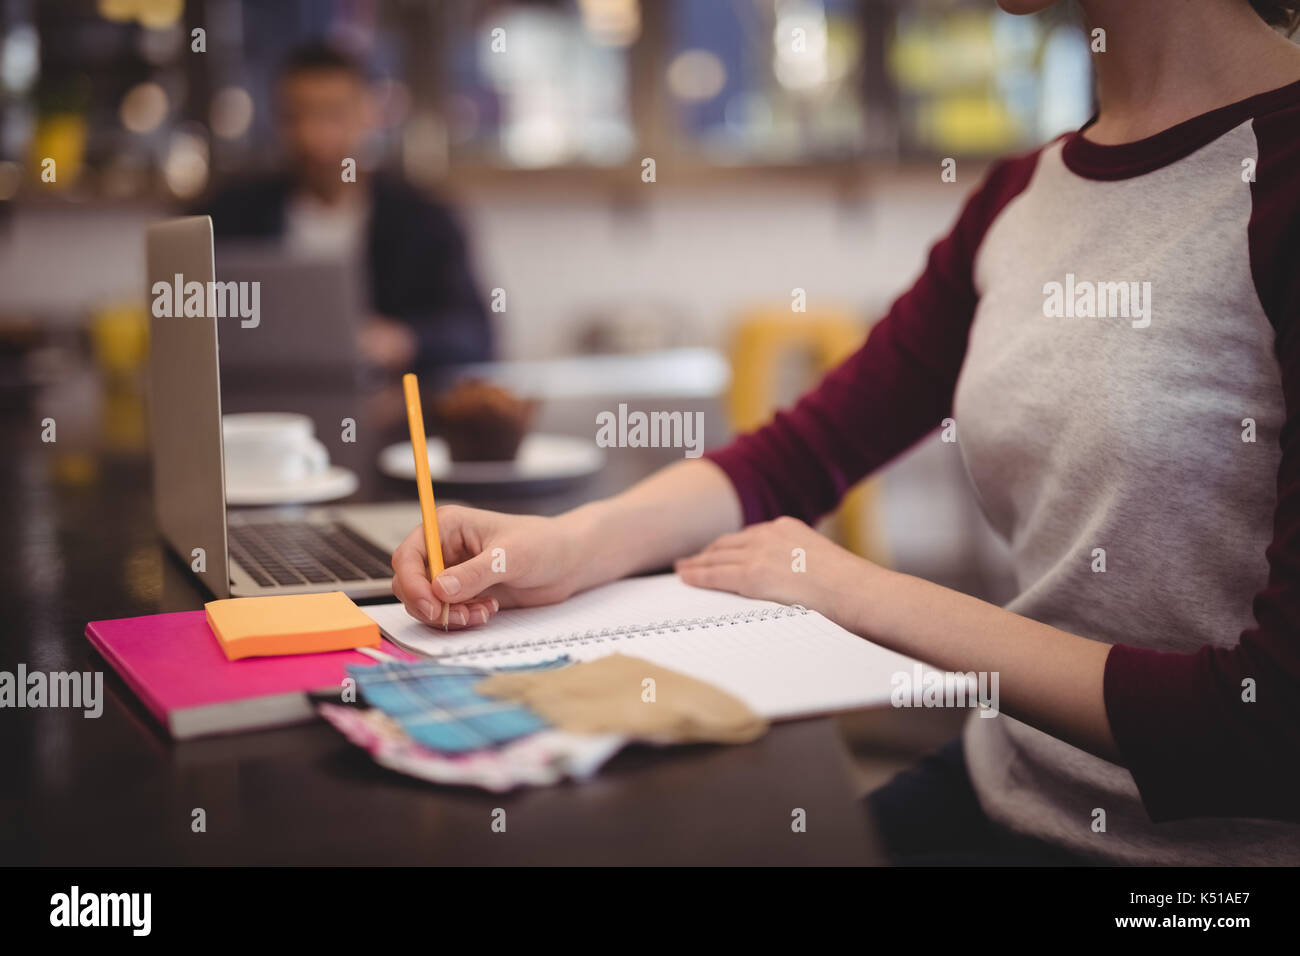 Midsection of design professional writing in dairy while sitting at table in coffee shop - Stock Image